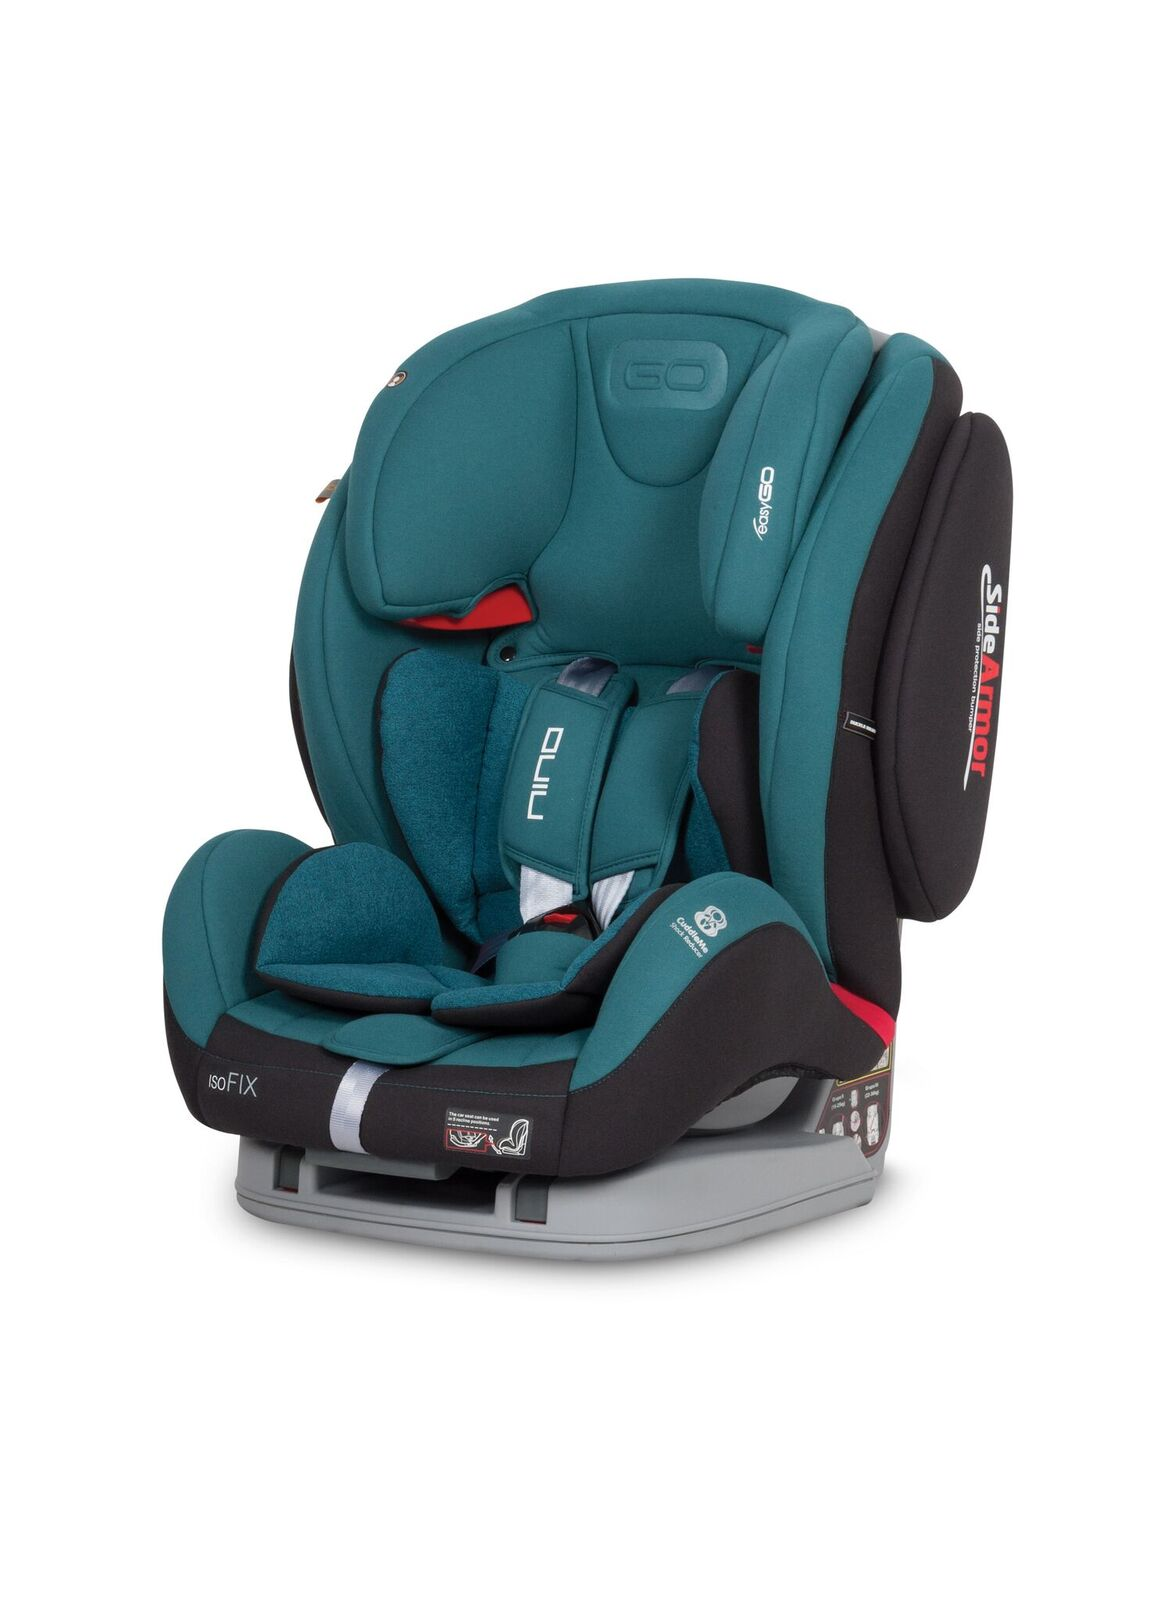 easygo NINOisofix adriatic 1 preview.jpeg